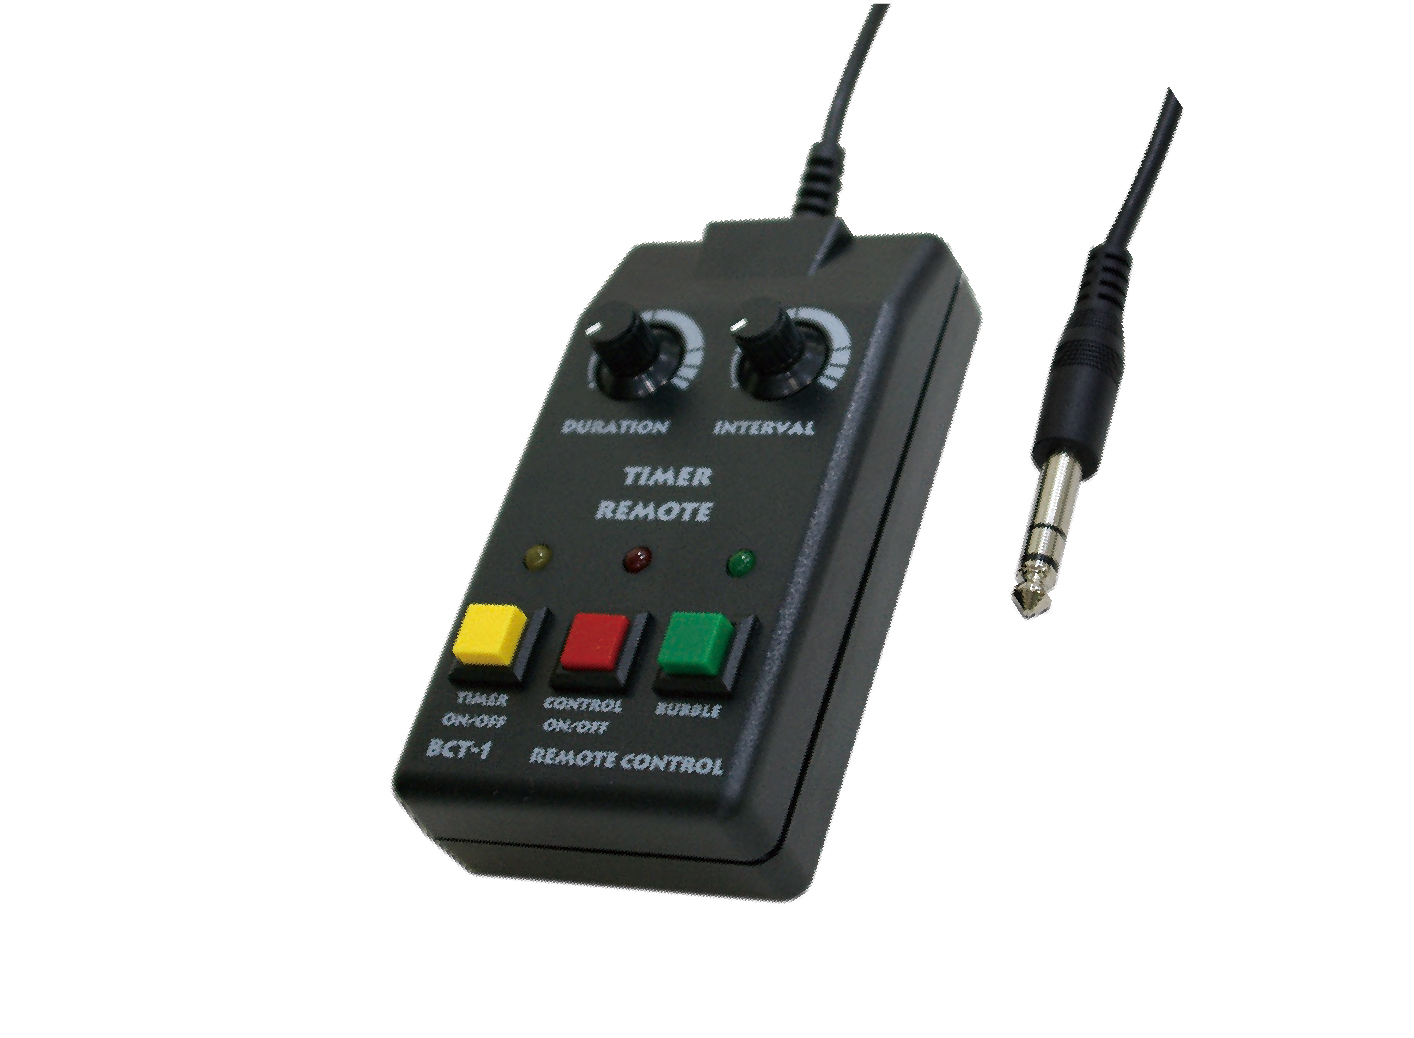 ACCESSORIES_BCT-1 -Timer Remote